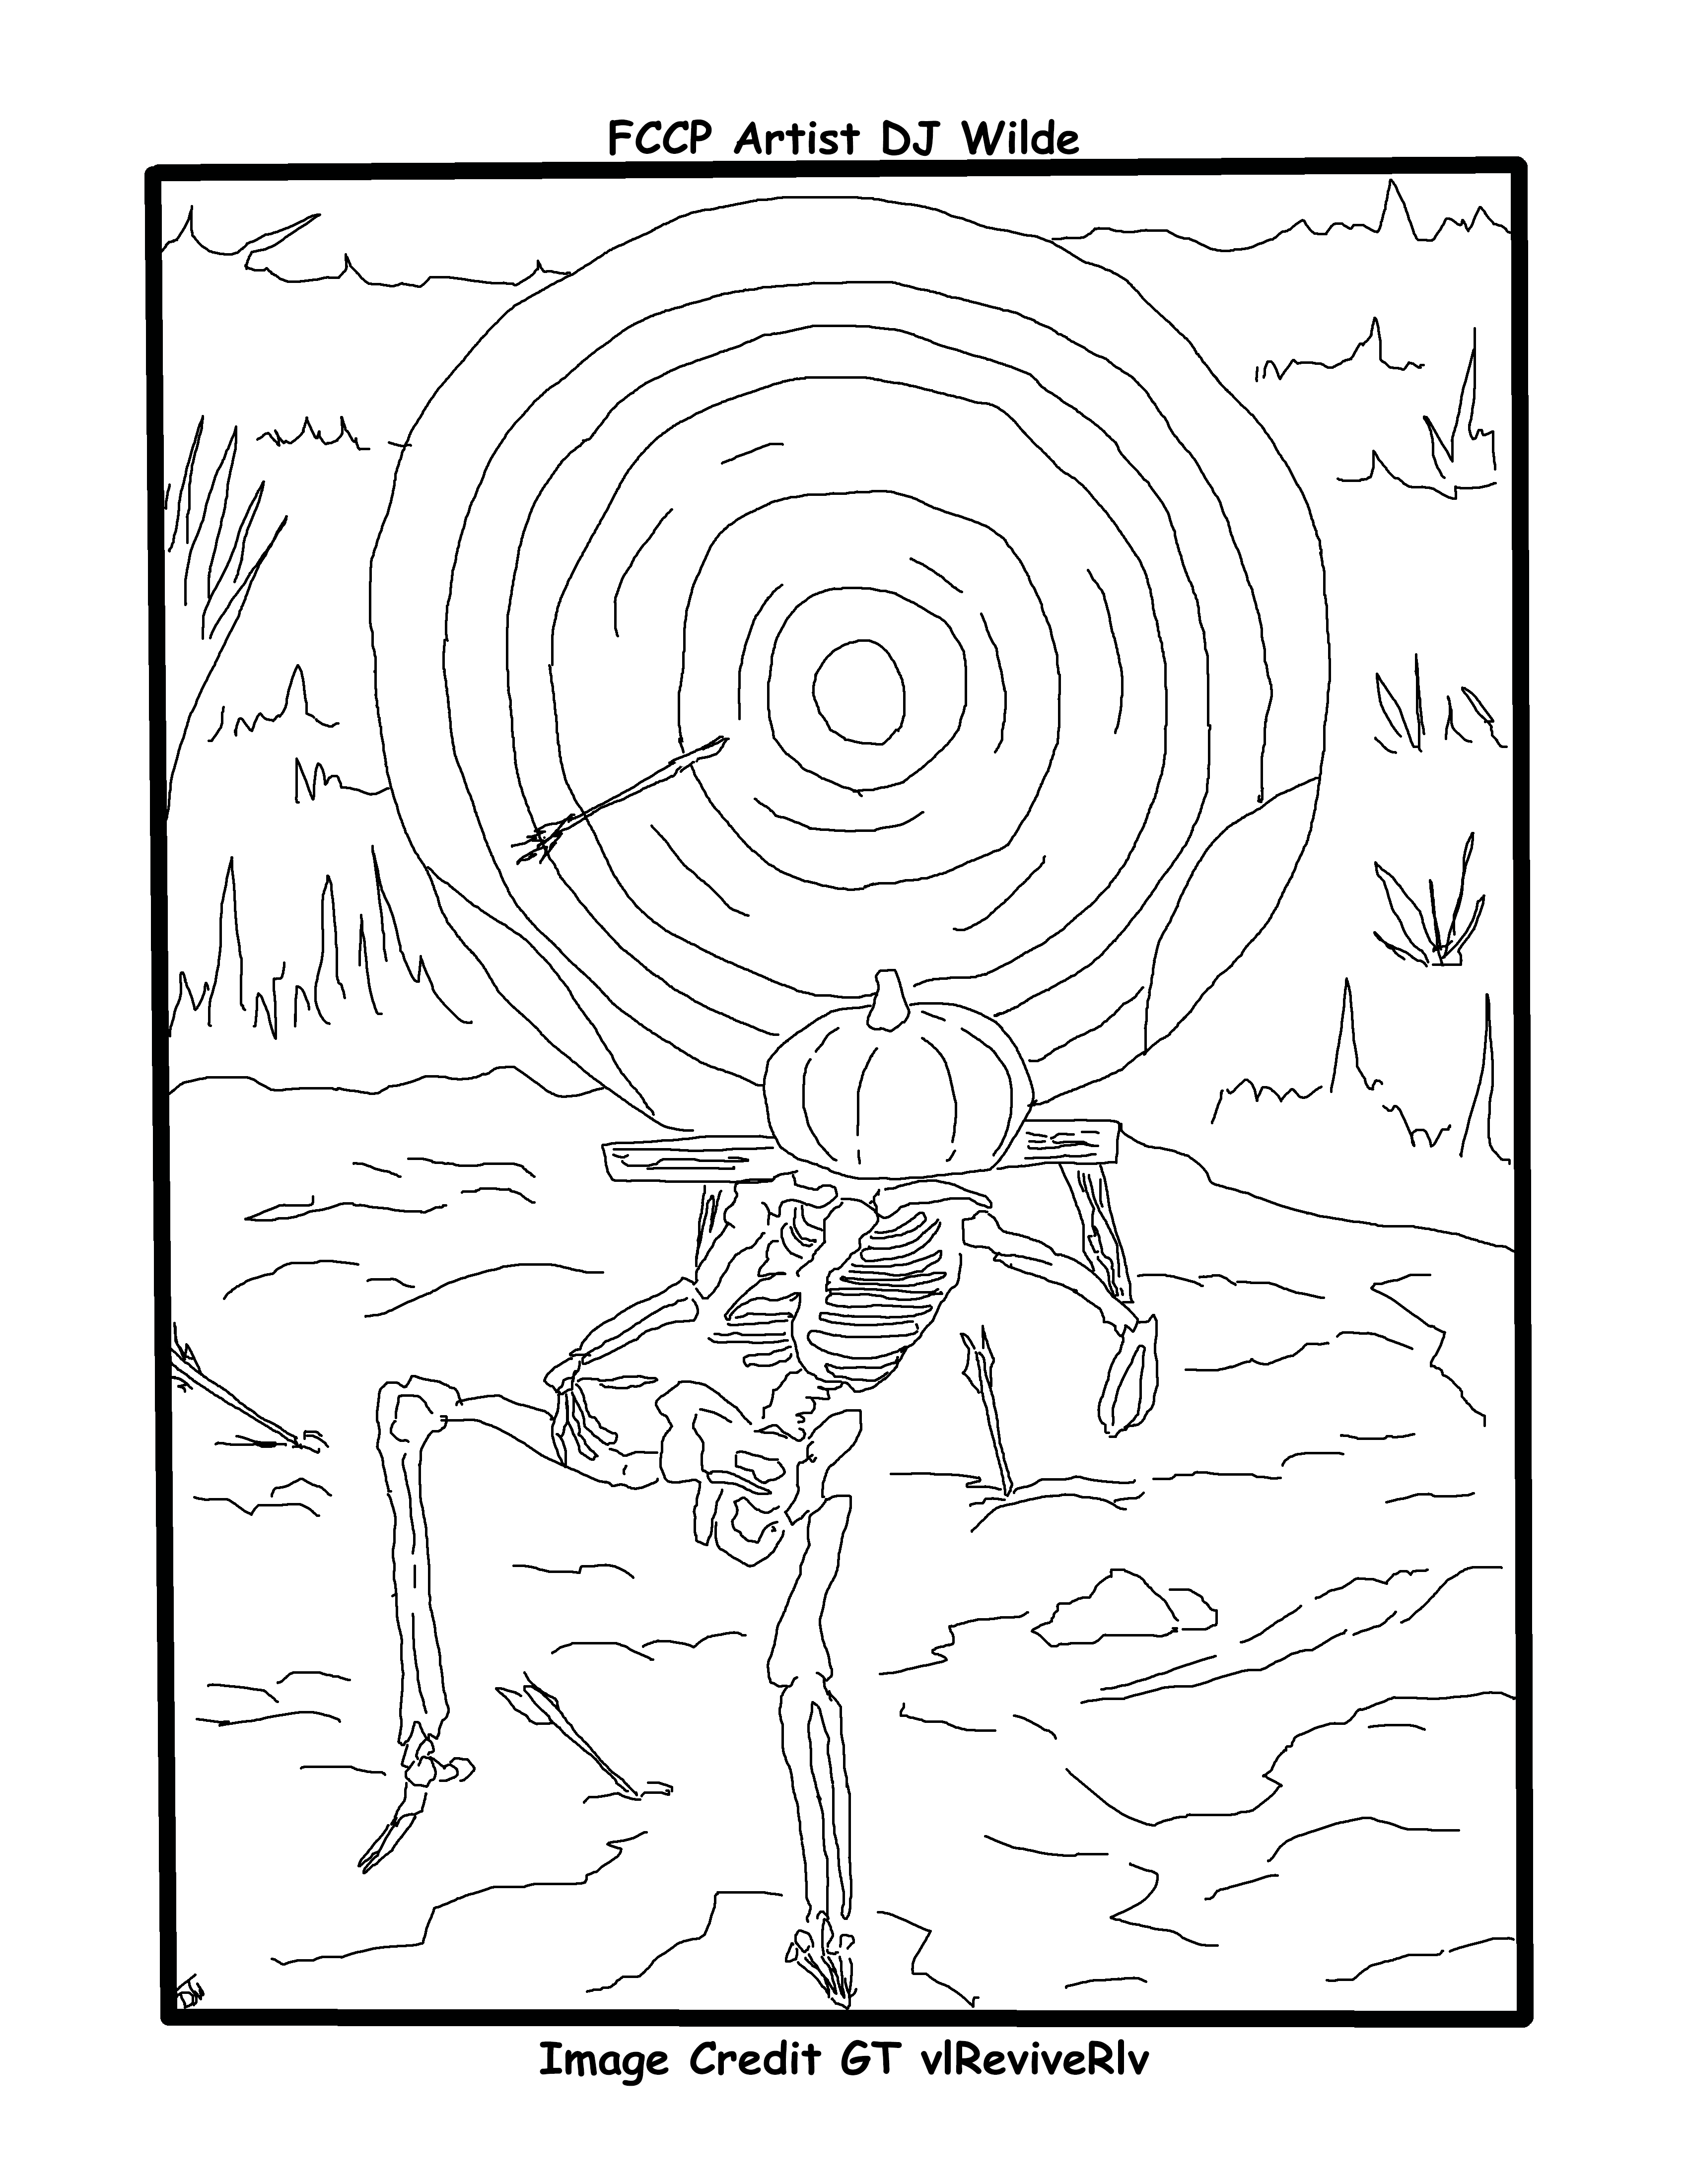 I Added A Few Arrows For Effect. In 2020 Coloring Pages, Color